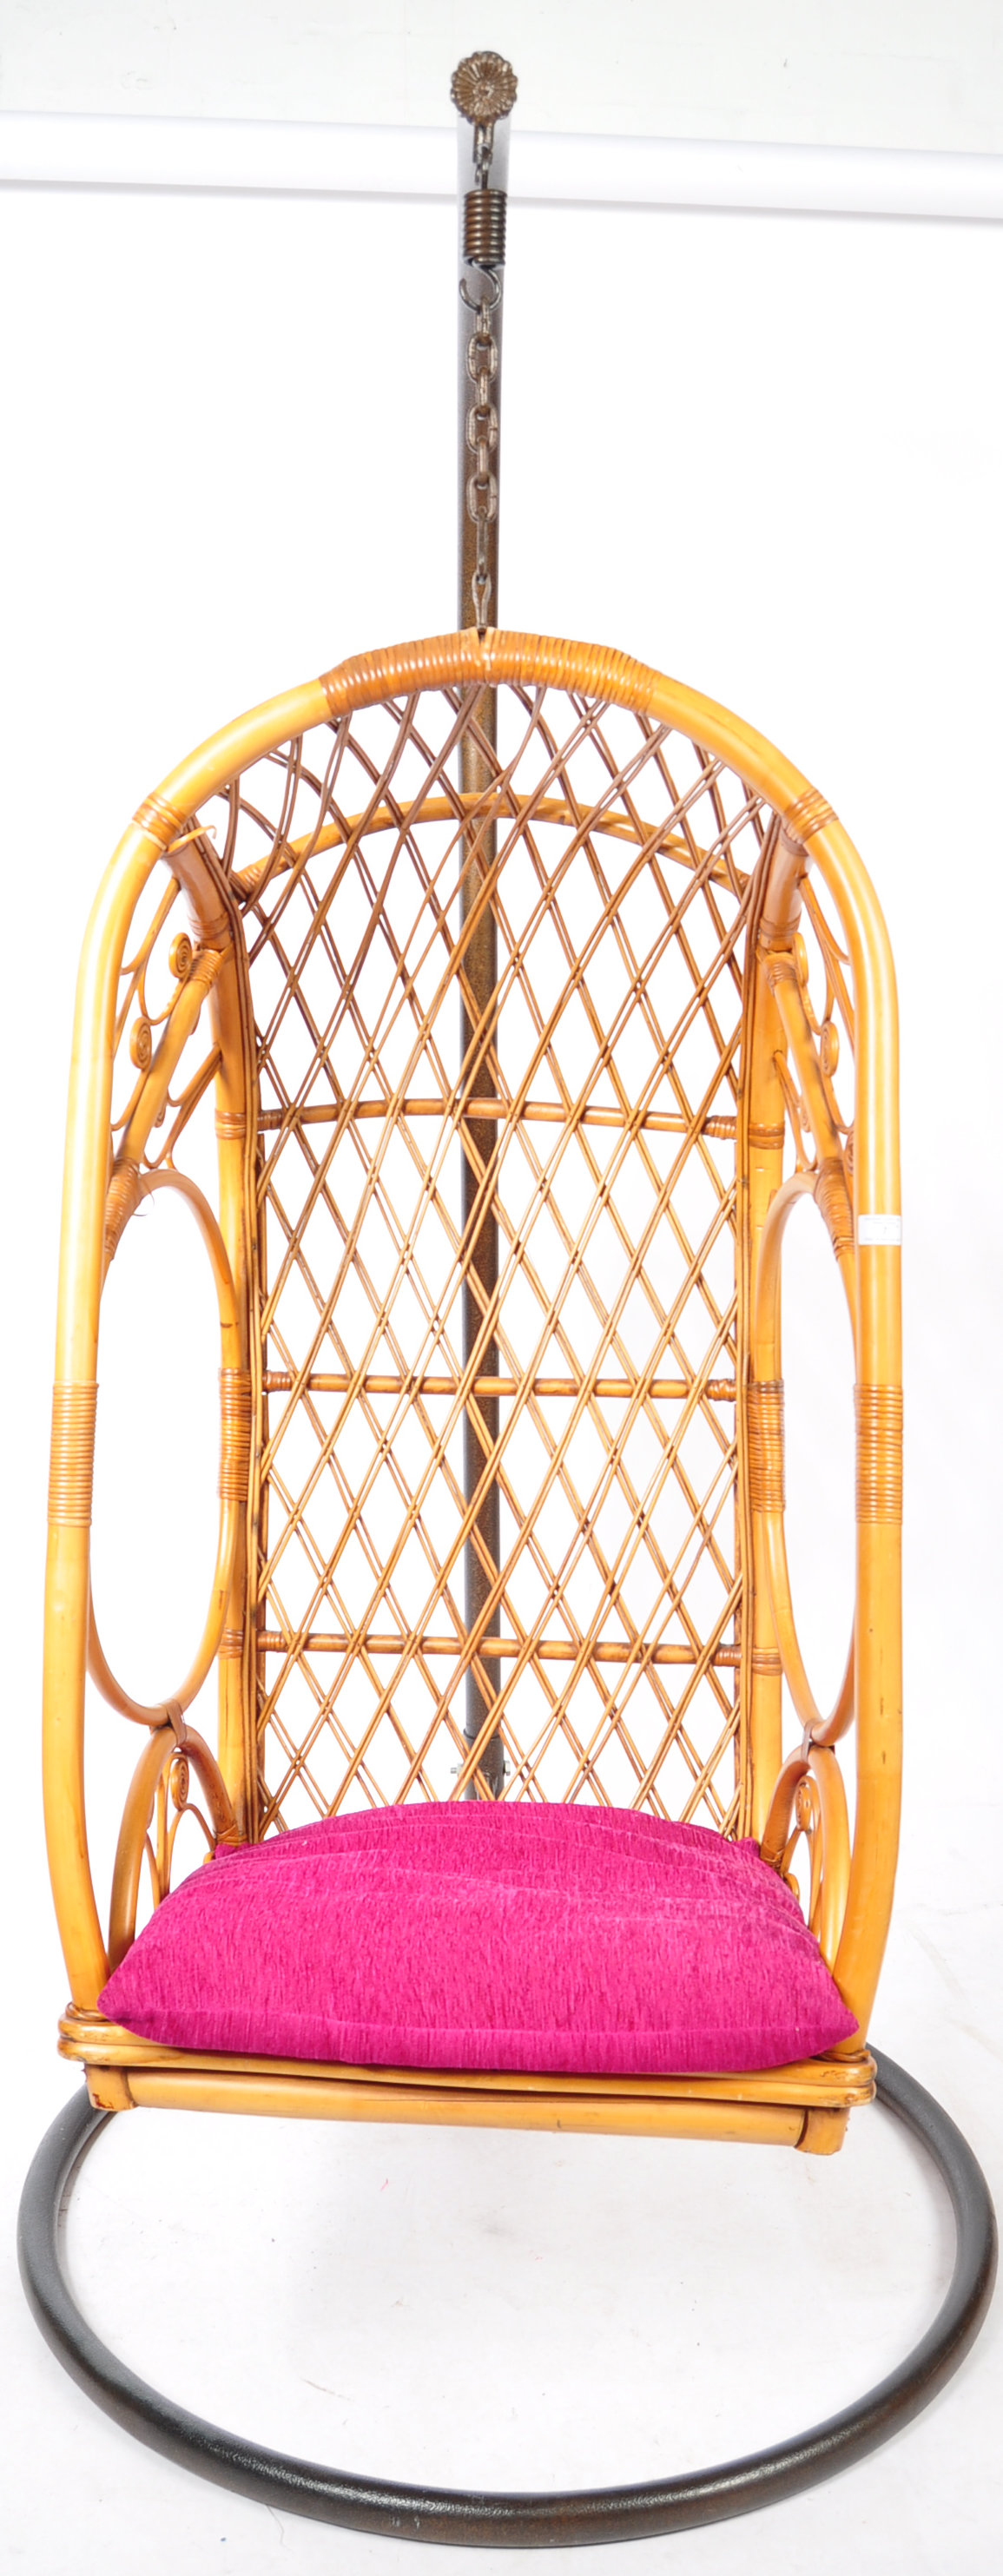 HANGING BASKET EGG SHAPED PENDULUM CHAIR OF WICKER CONSTRUCTION - Image 7 of 8